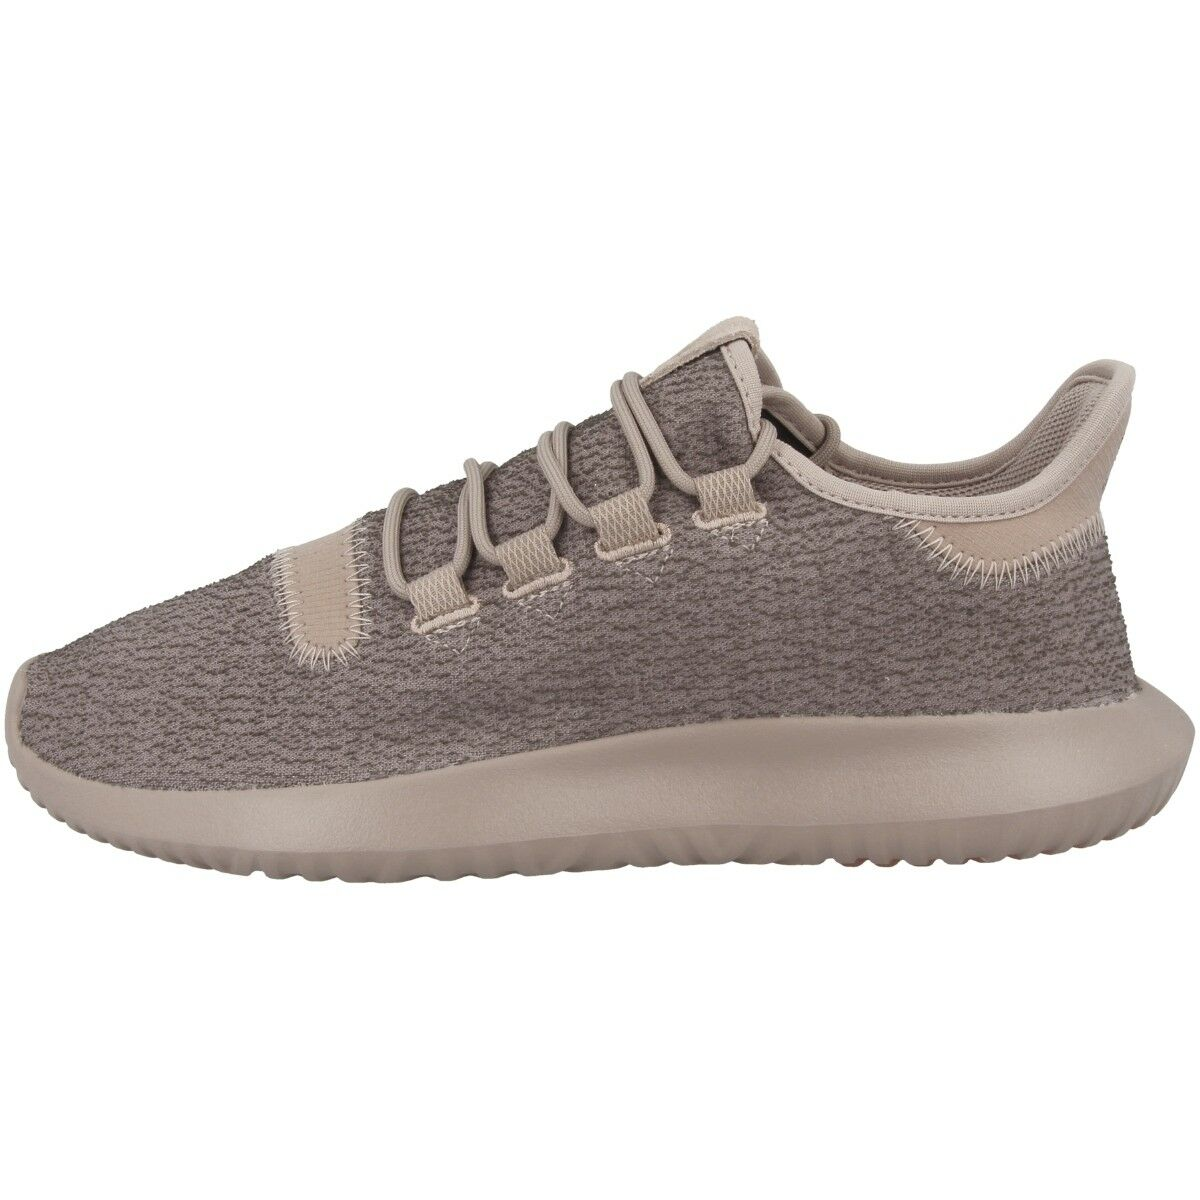 Adidas Tubular Shadow Men Schuhe Sneaker Laufschuhe grey BY3574 Knit Runner ZX